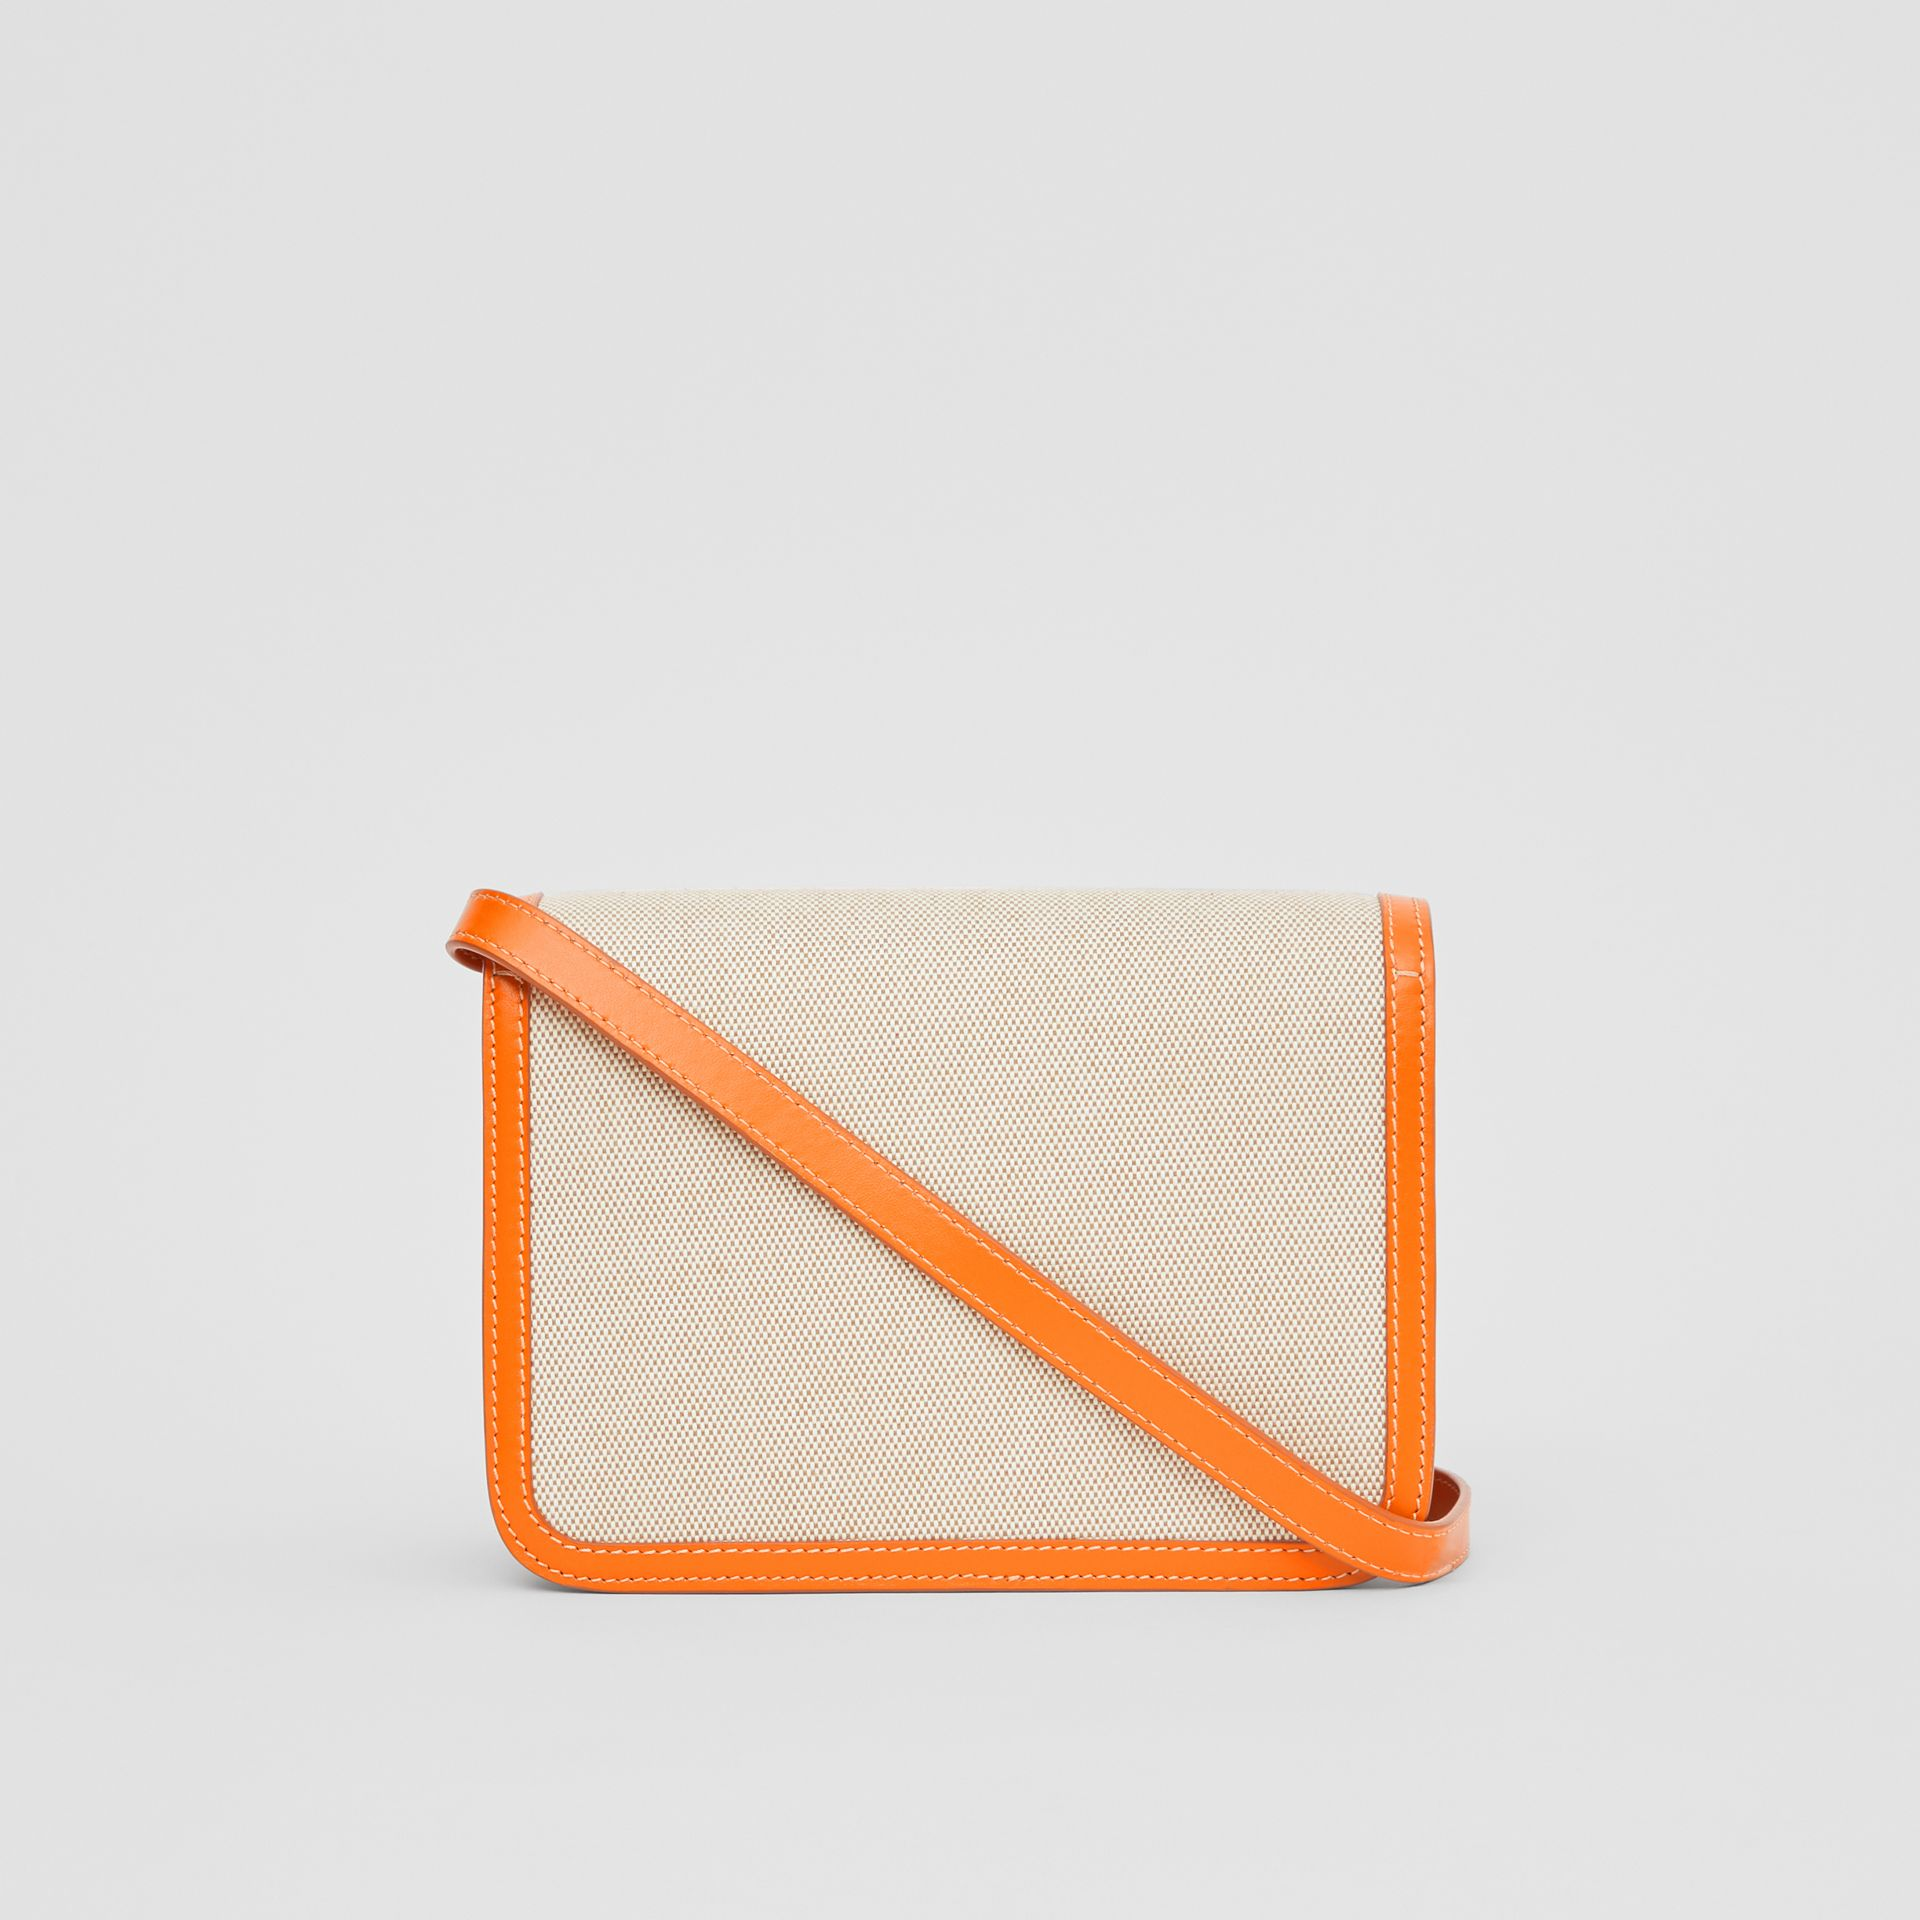 Small Two-tone Canvas and Leather TB Bag in Orange - Women | Burberry Australia - gallery image 5